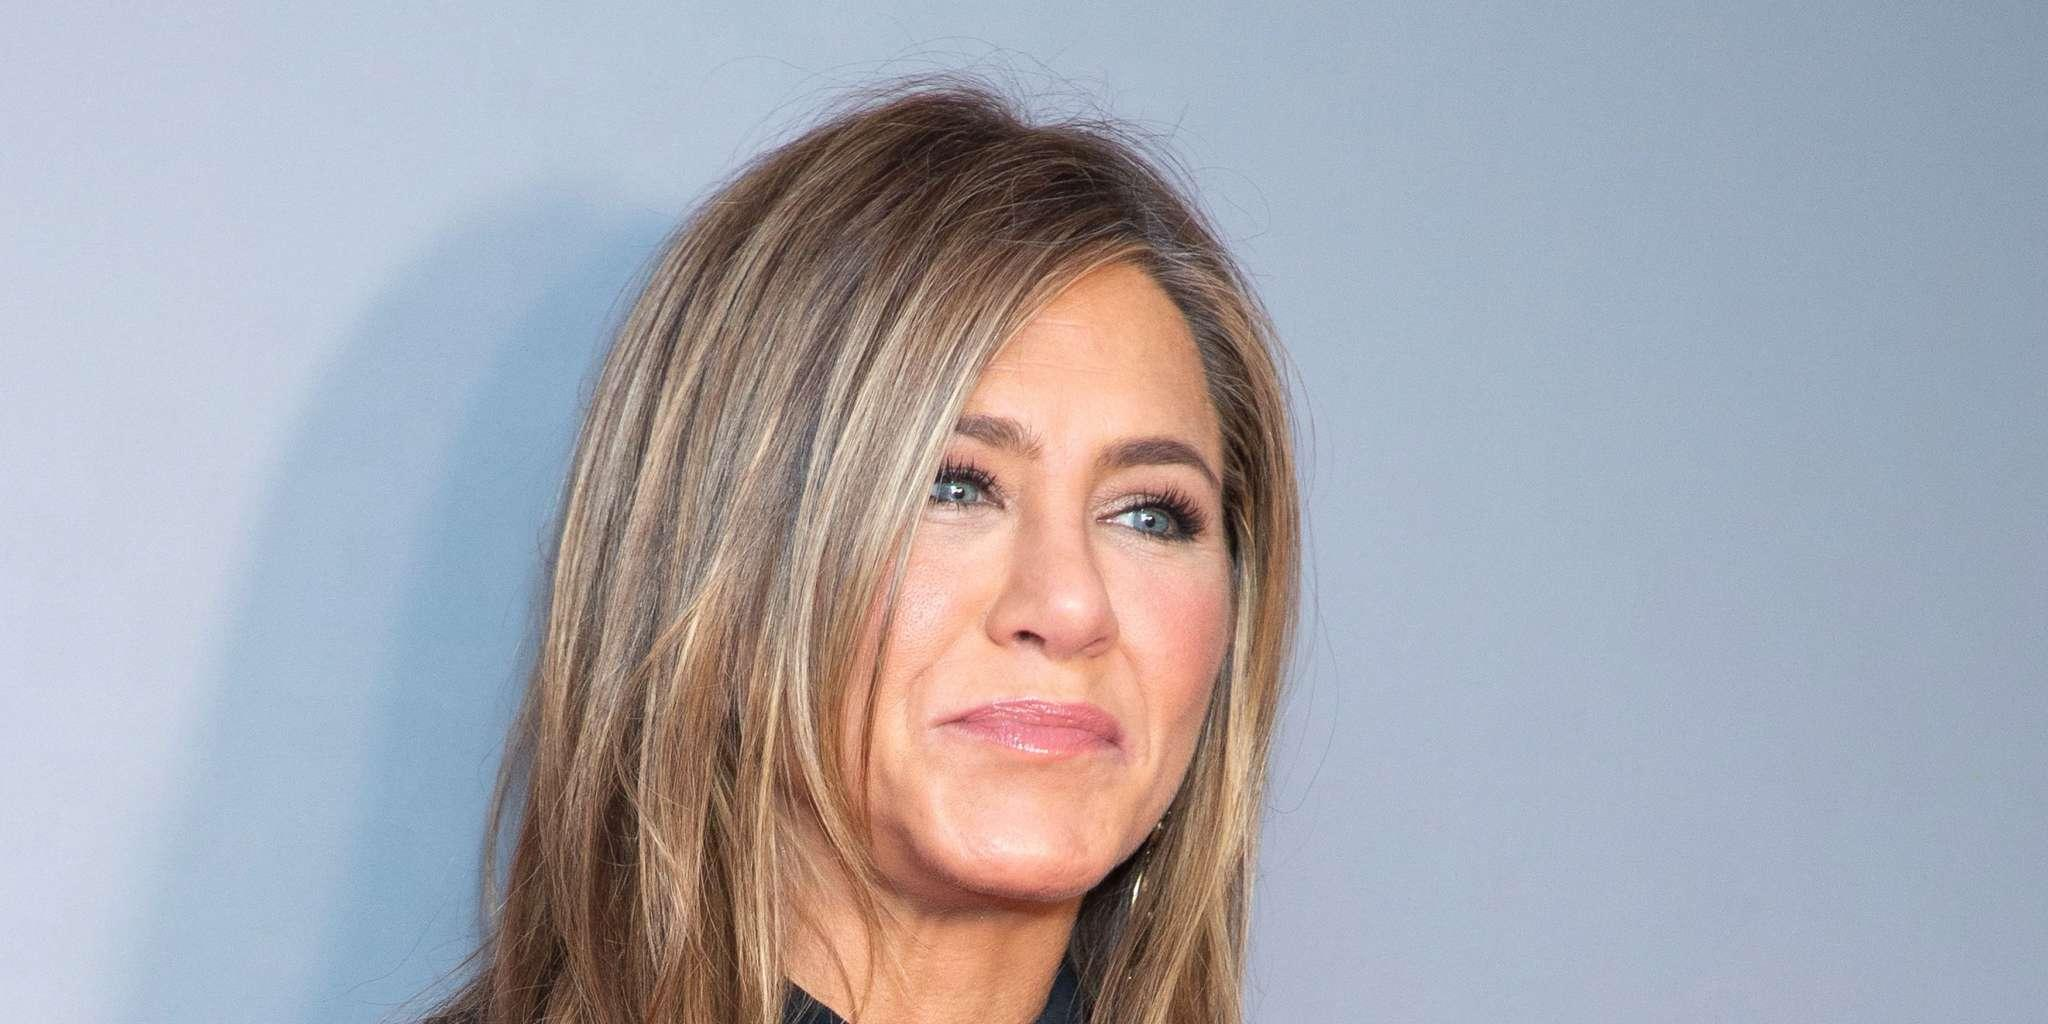 Jennifer Aniston Reveals She Likes To Re-Watch 'Friends' Episodes And Bloopers!